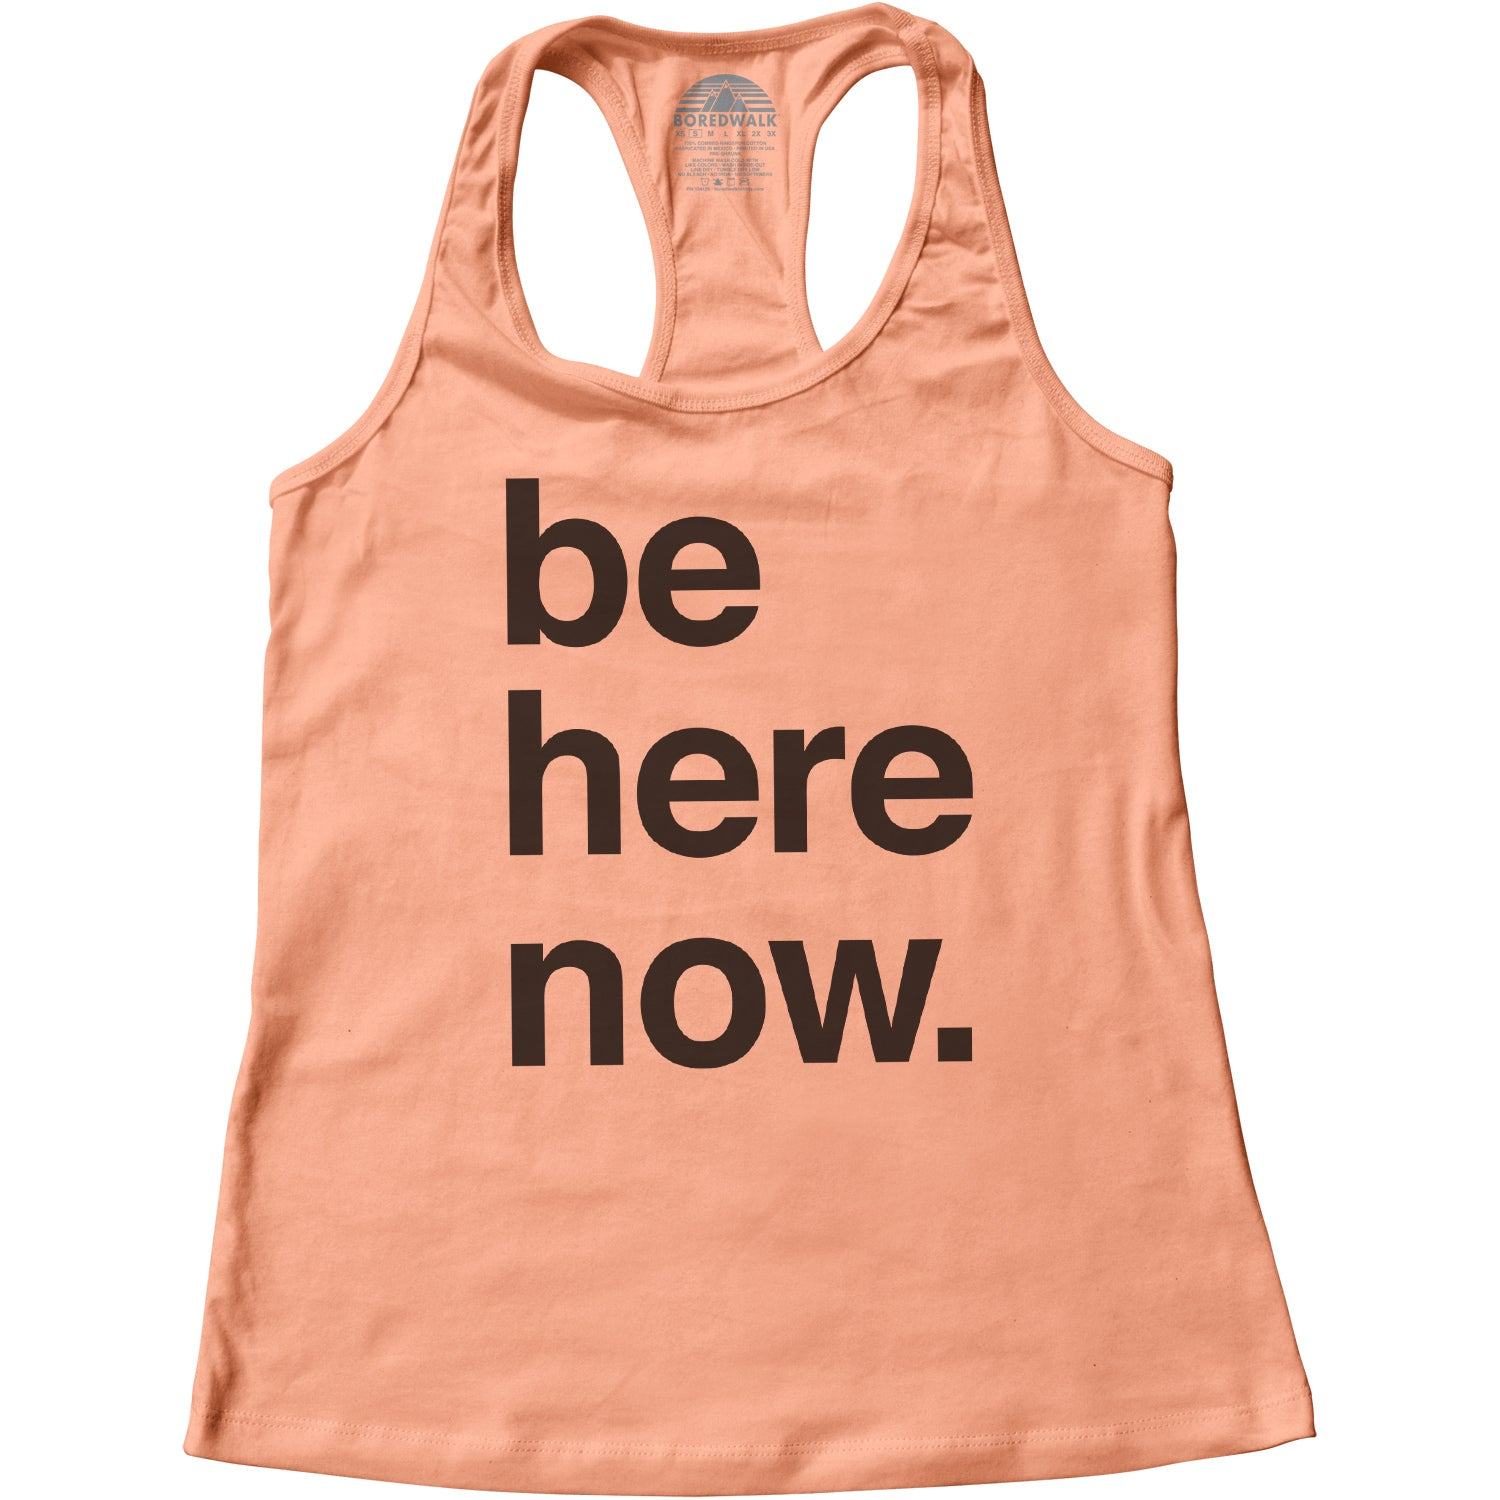 Women's Be Here Now Racerback Tank Top